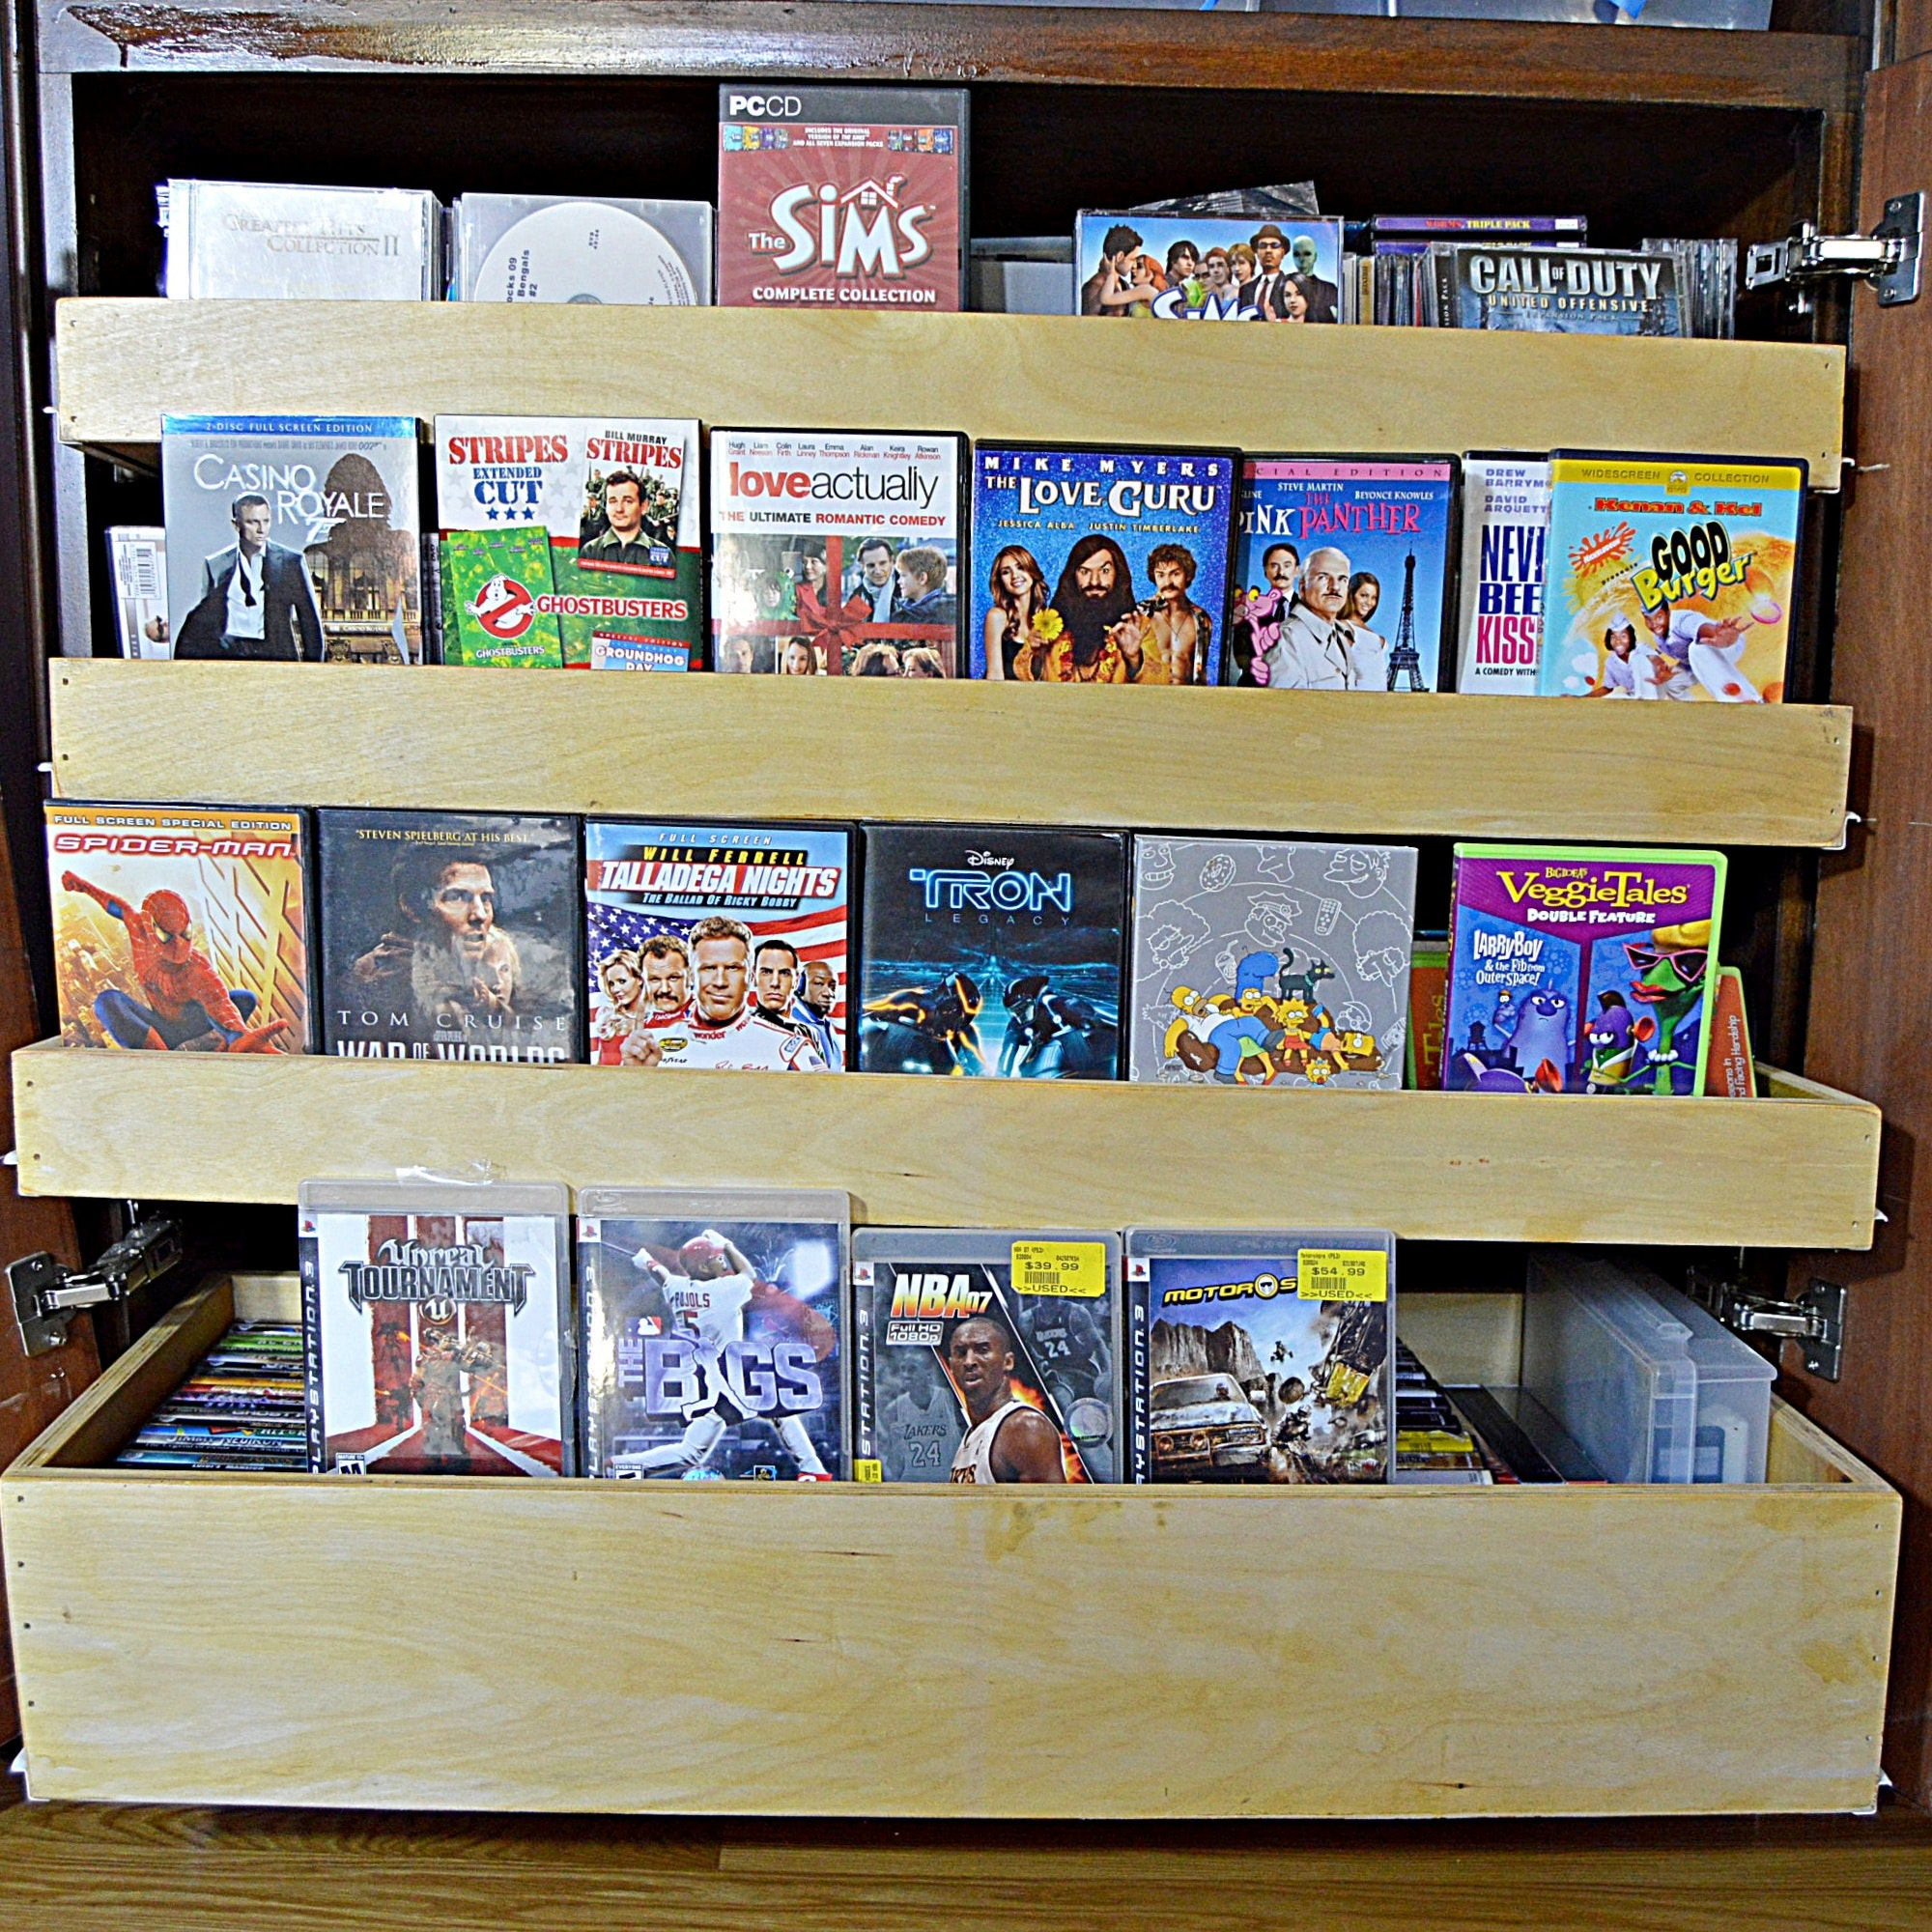 Over 100 Feature Film DVDs, PlayStation Games and CDs